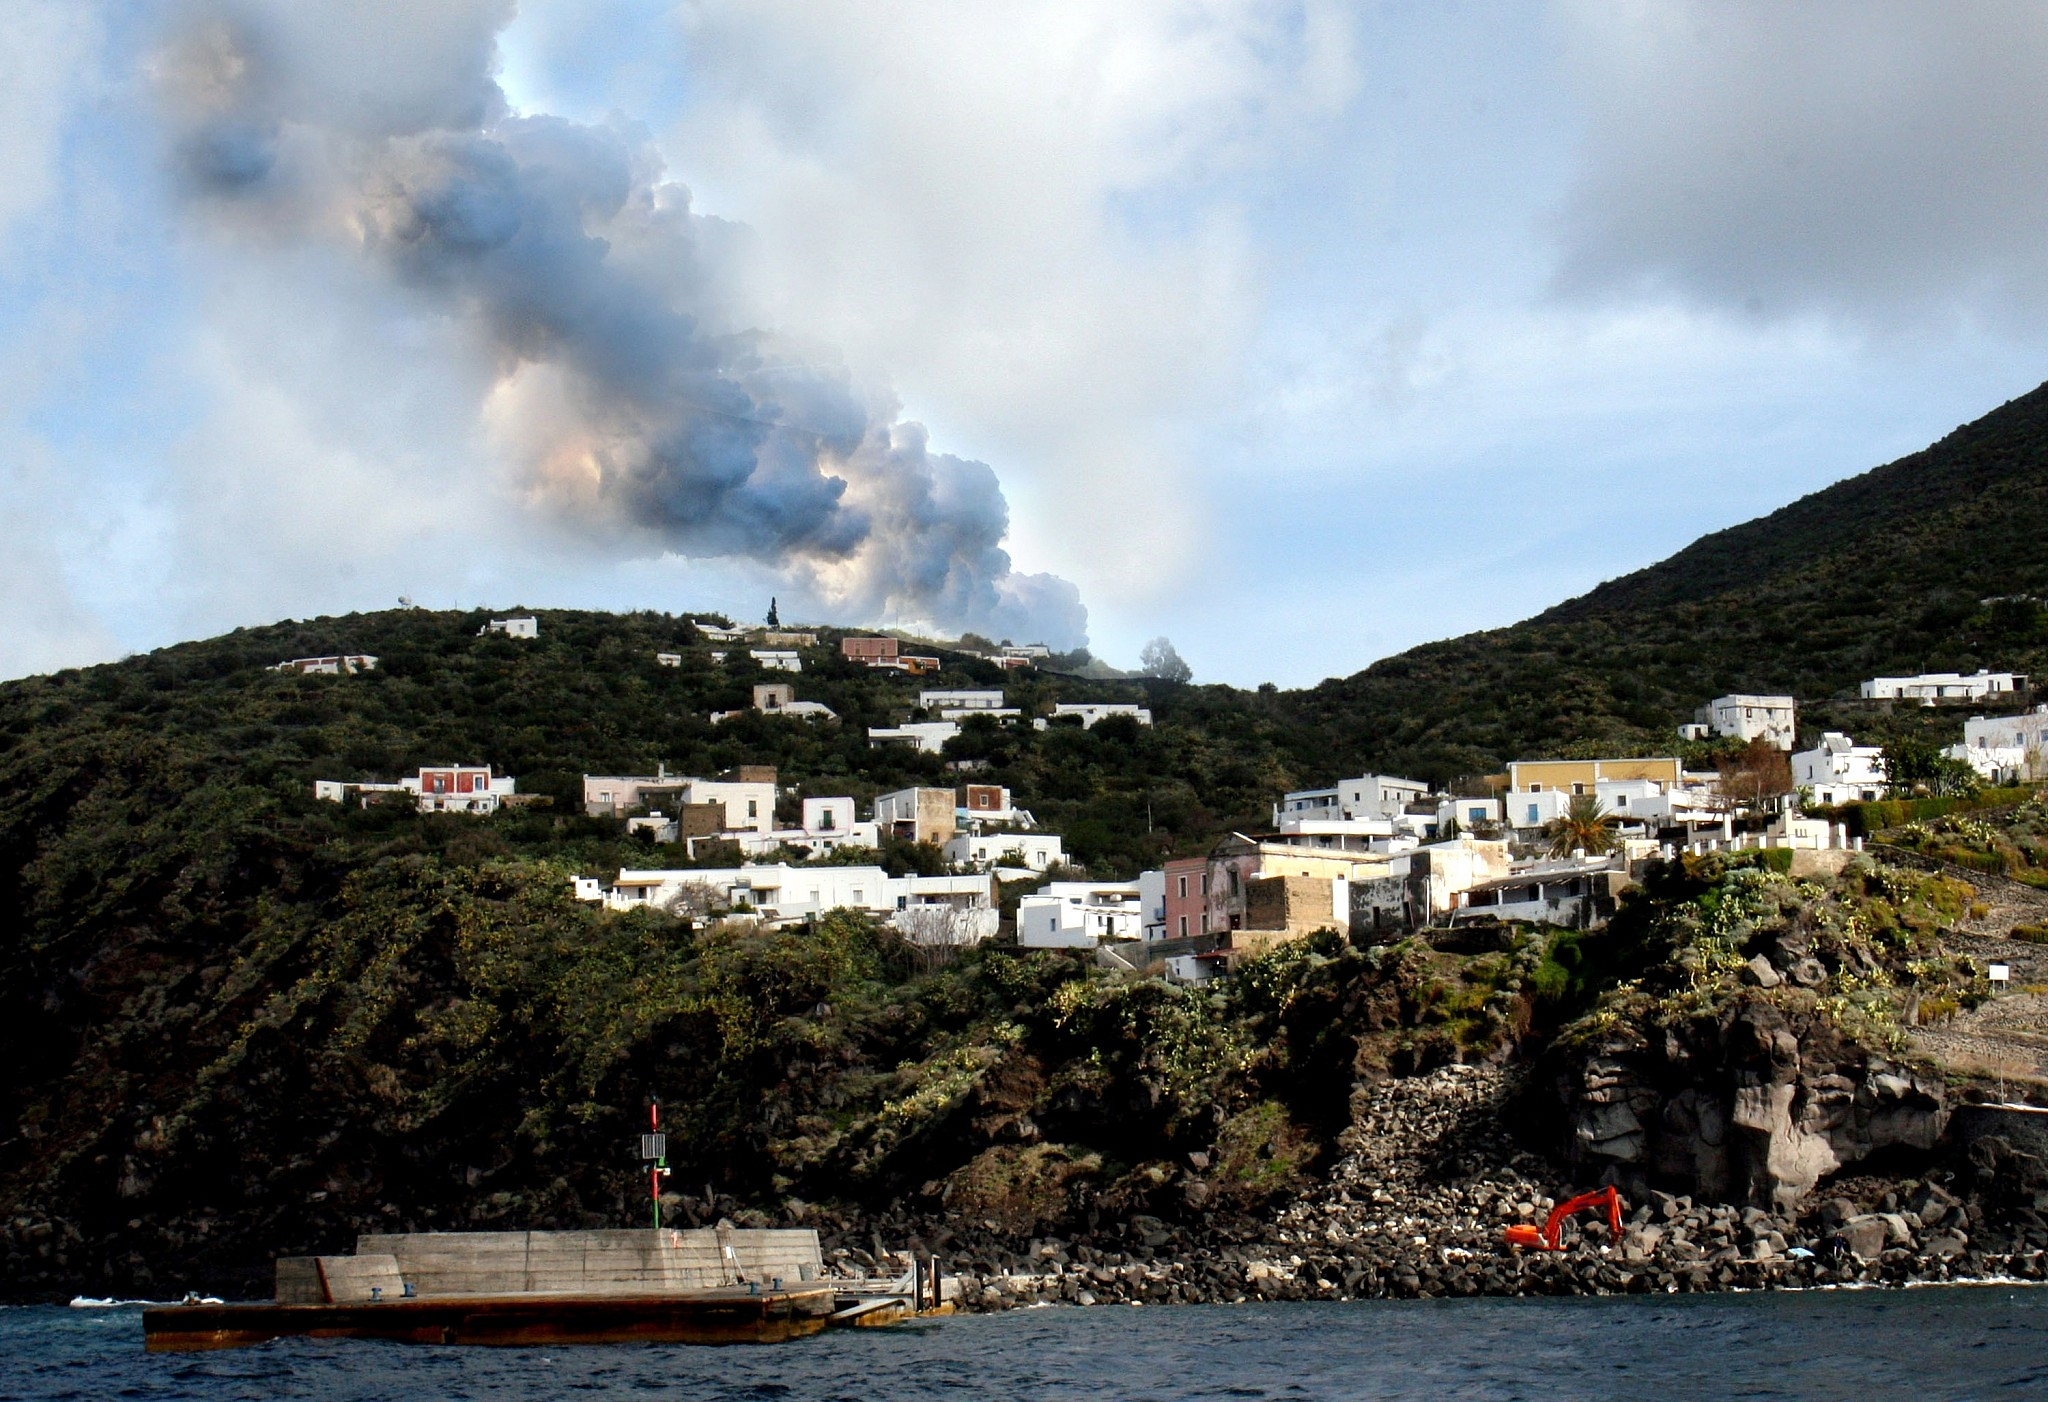 Tourist killed as volcano erupts on Sicily's Stromboli island